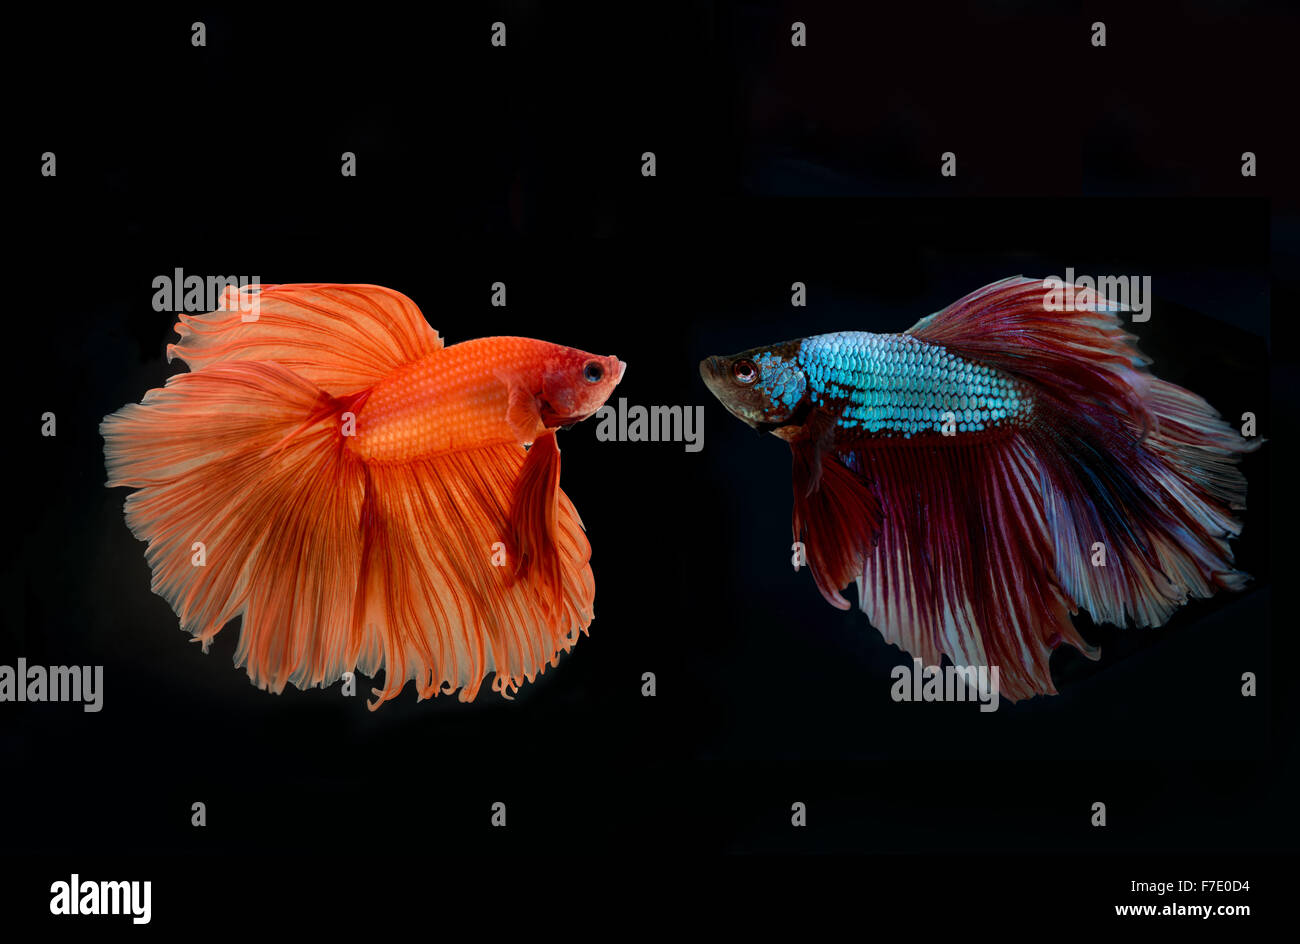 siamese fighting fish confronting - Stock Image